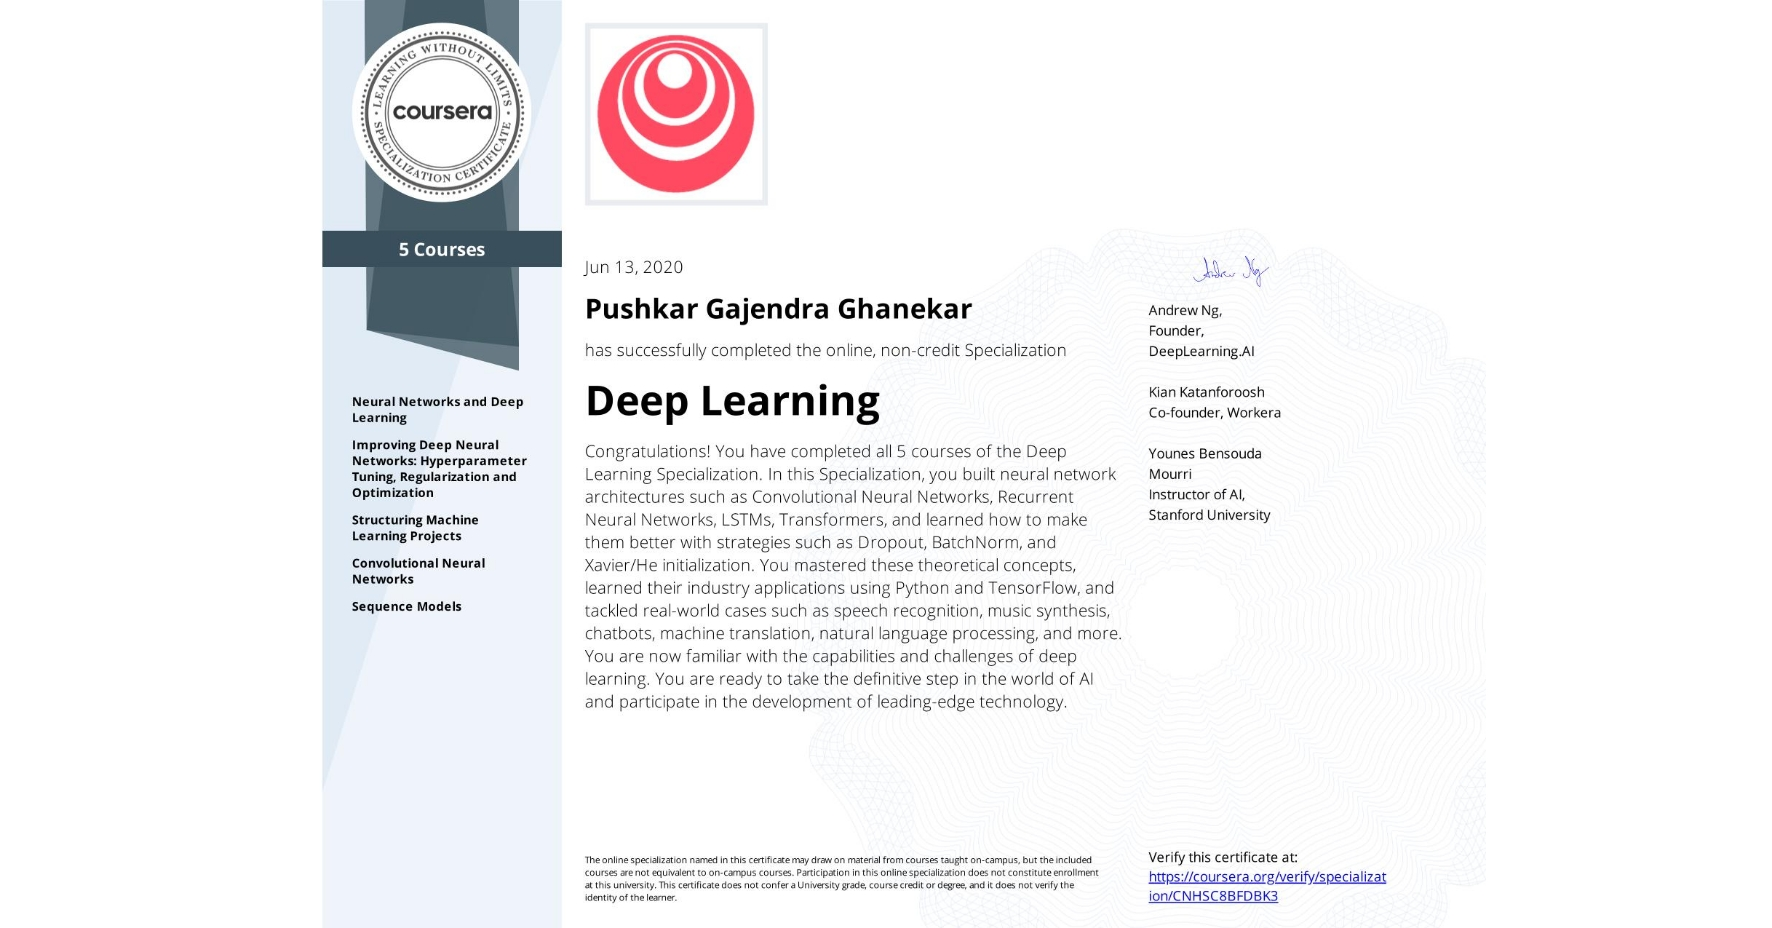 View certificate for Pushkar Gajendra Ghanekar, Deep Learning, offered through Coursera. Congratulations! You have completed all five courses of the Deep Learning Specialization.  In this Specialization, you built neural network architectures such as Convolutional Neural Networks, Recurrent Neural Networks, LSTMs, Transformers and learned how to make them better with strategies such as Dropout, BatchNorm, Xavier/He initialization, and more. You mastered these theoretical concepts and their application using Python and TensorFlow and also tackled real-world case studies such as autonomous driving, sign language reading, music generation, computer vision, speech recognition, and natural language processing.   You're now familiar with the capabilities, challenges, and consequences of deep learning and are ready to participate in the development of leading-edge AI technology.